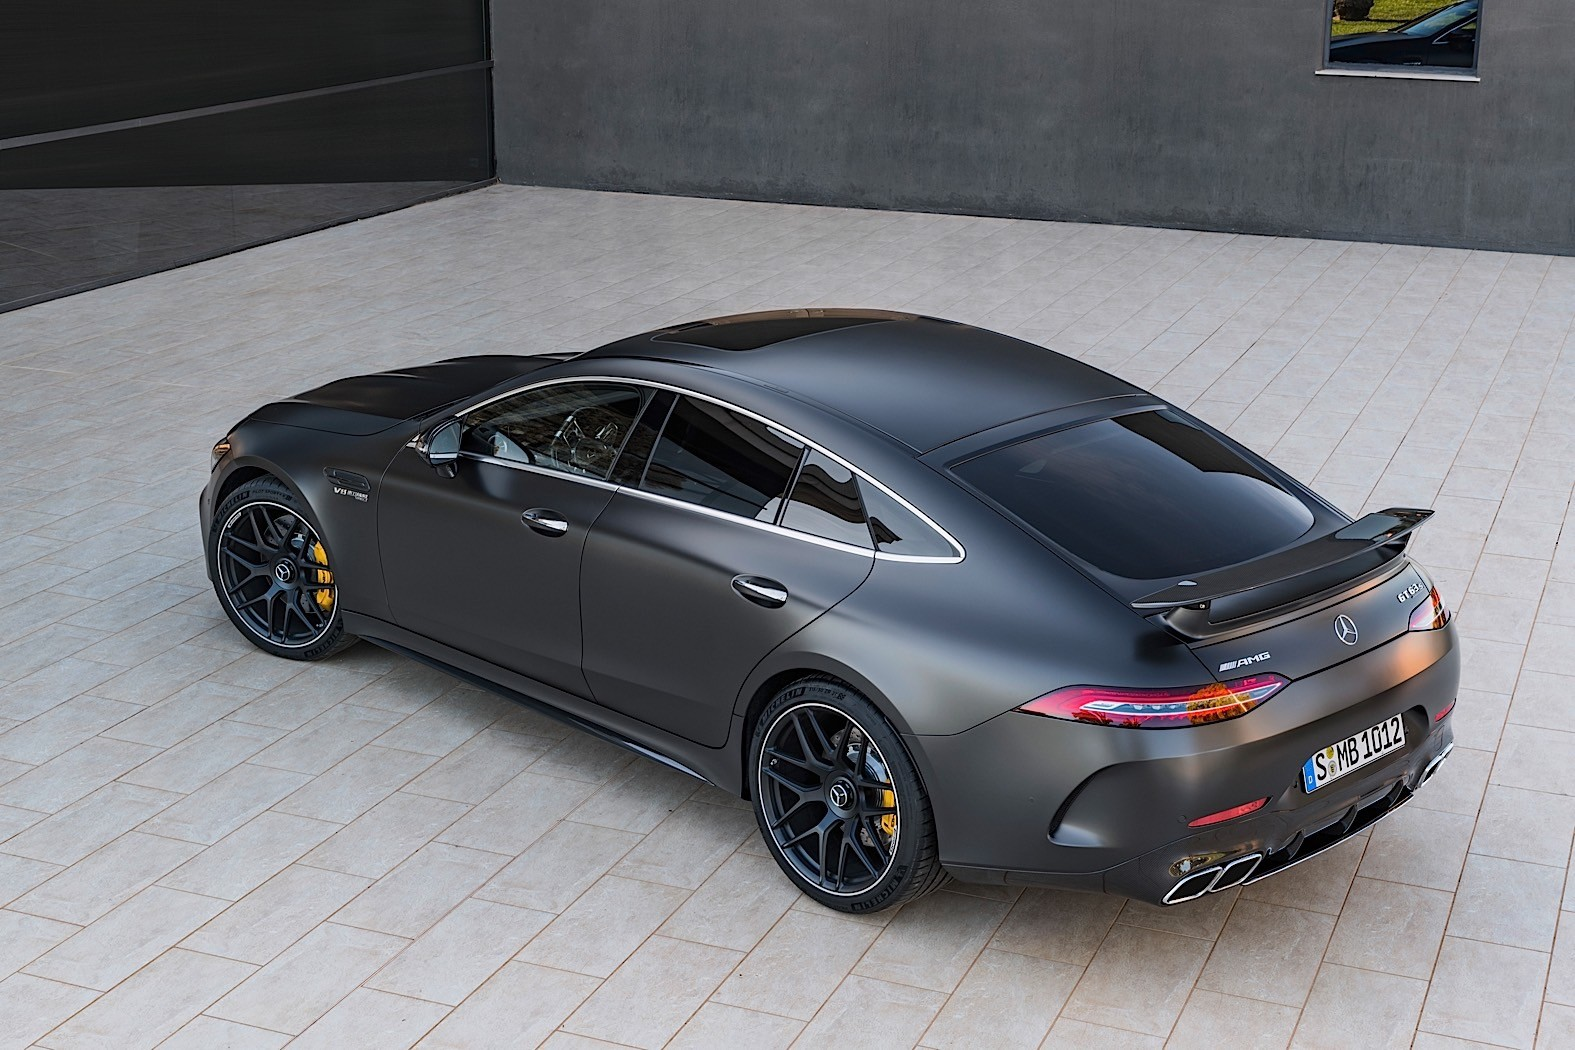 2019 mercedes amg gt 4 door coupe goes live in geneva. Black Bedroom Furniture Sets. Home Design Ideas